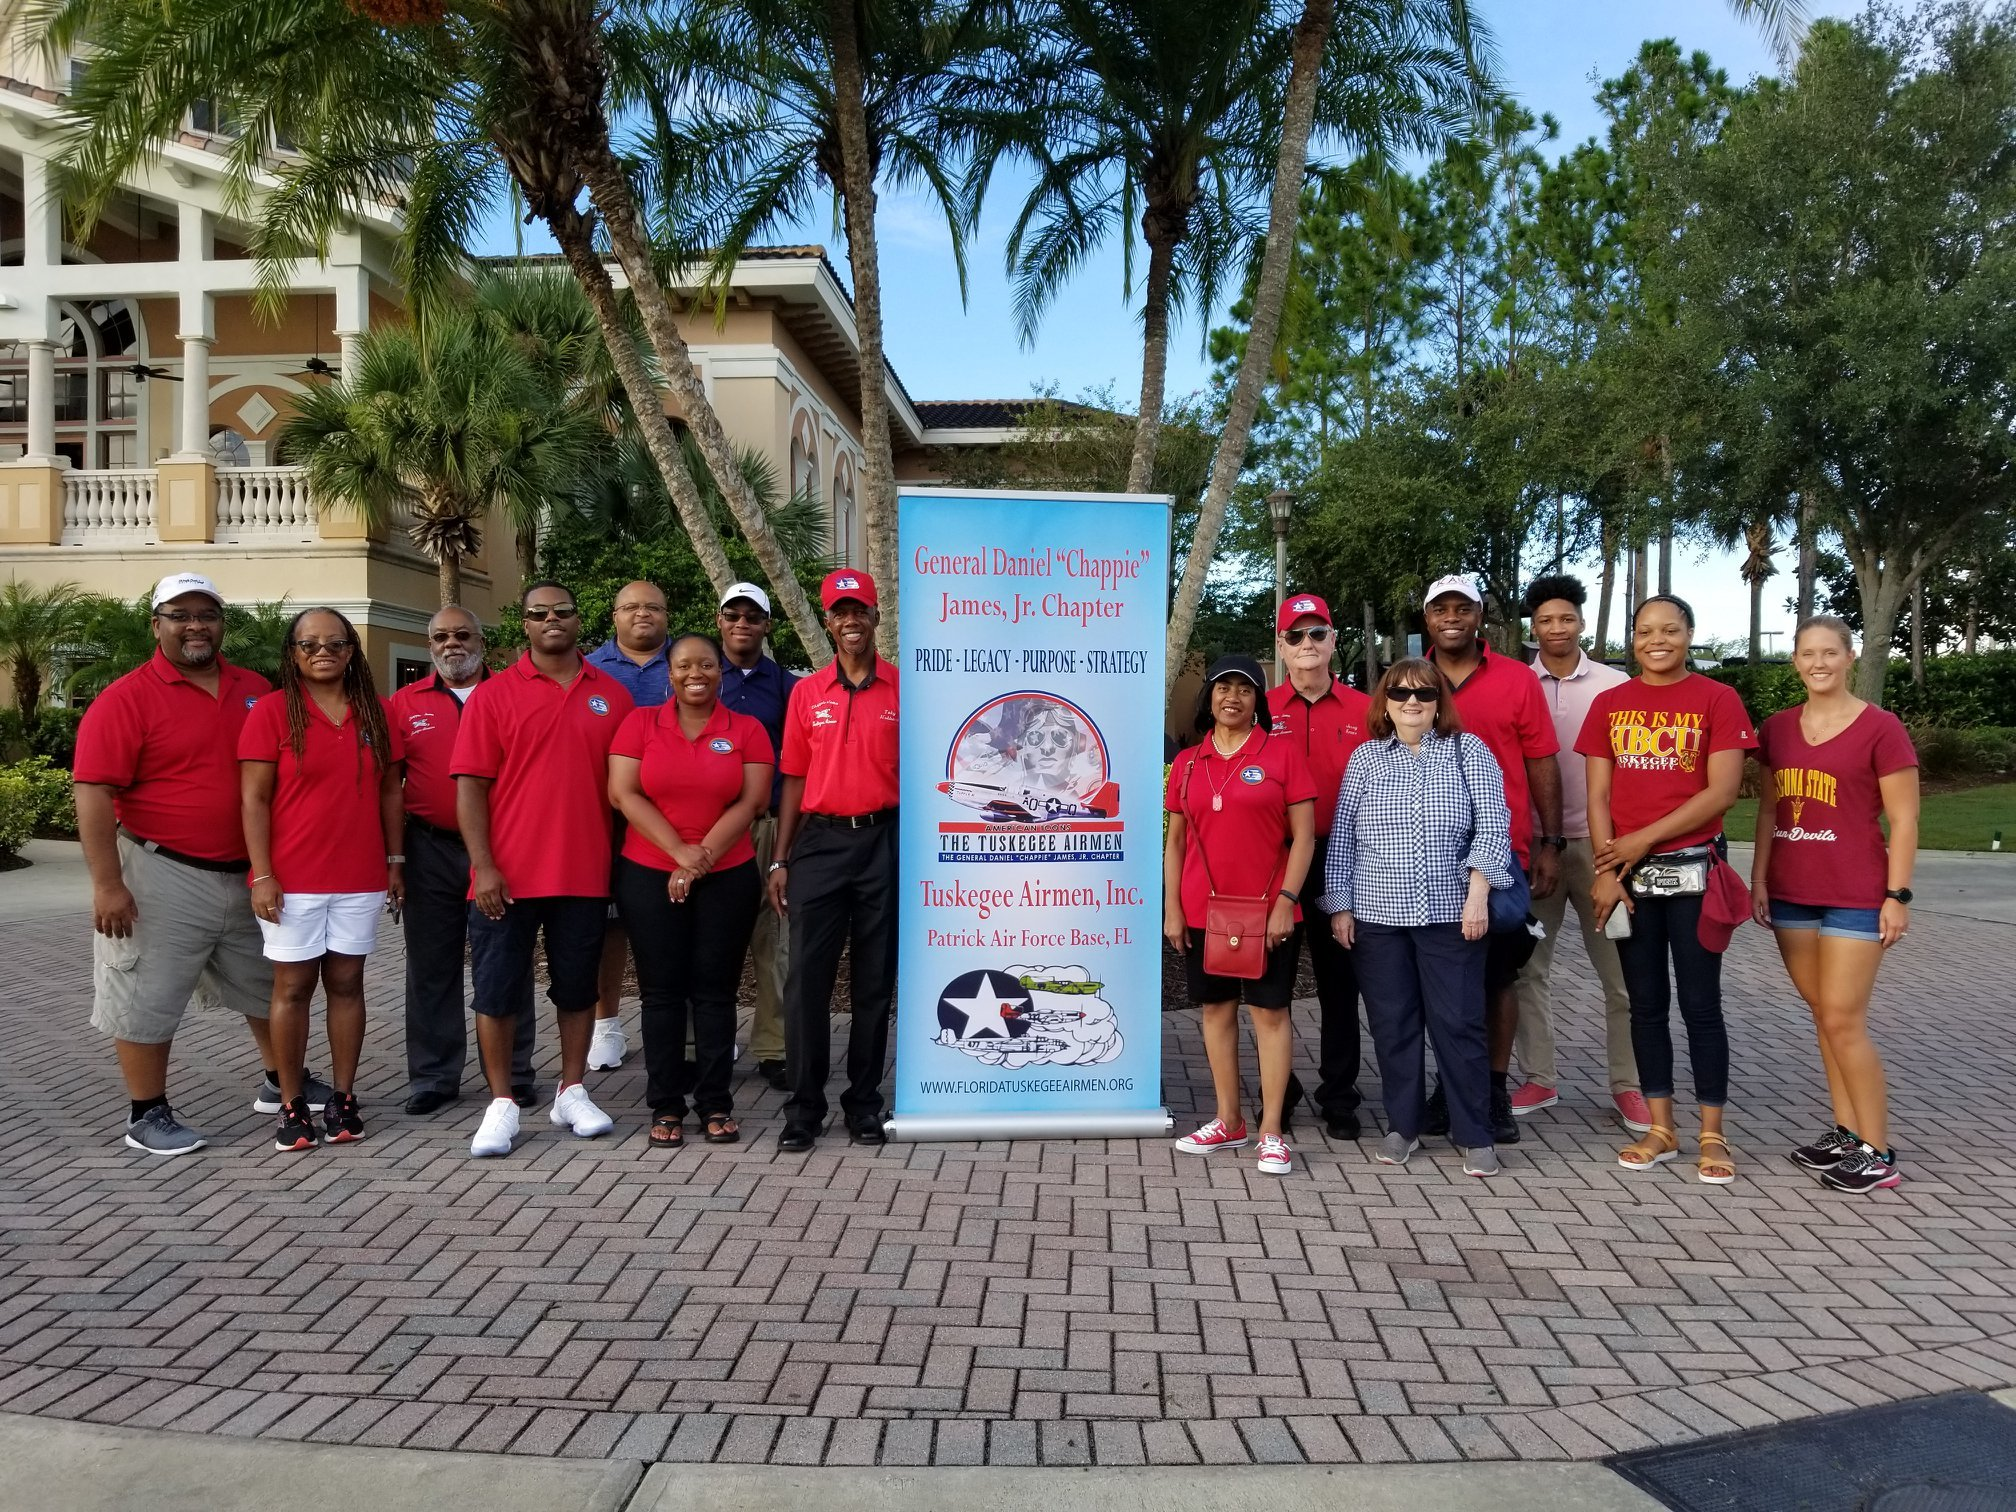 Tuskegee Airmen 2nd Annual Charity Golf Tournament gallery image #6